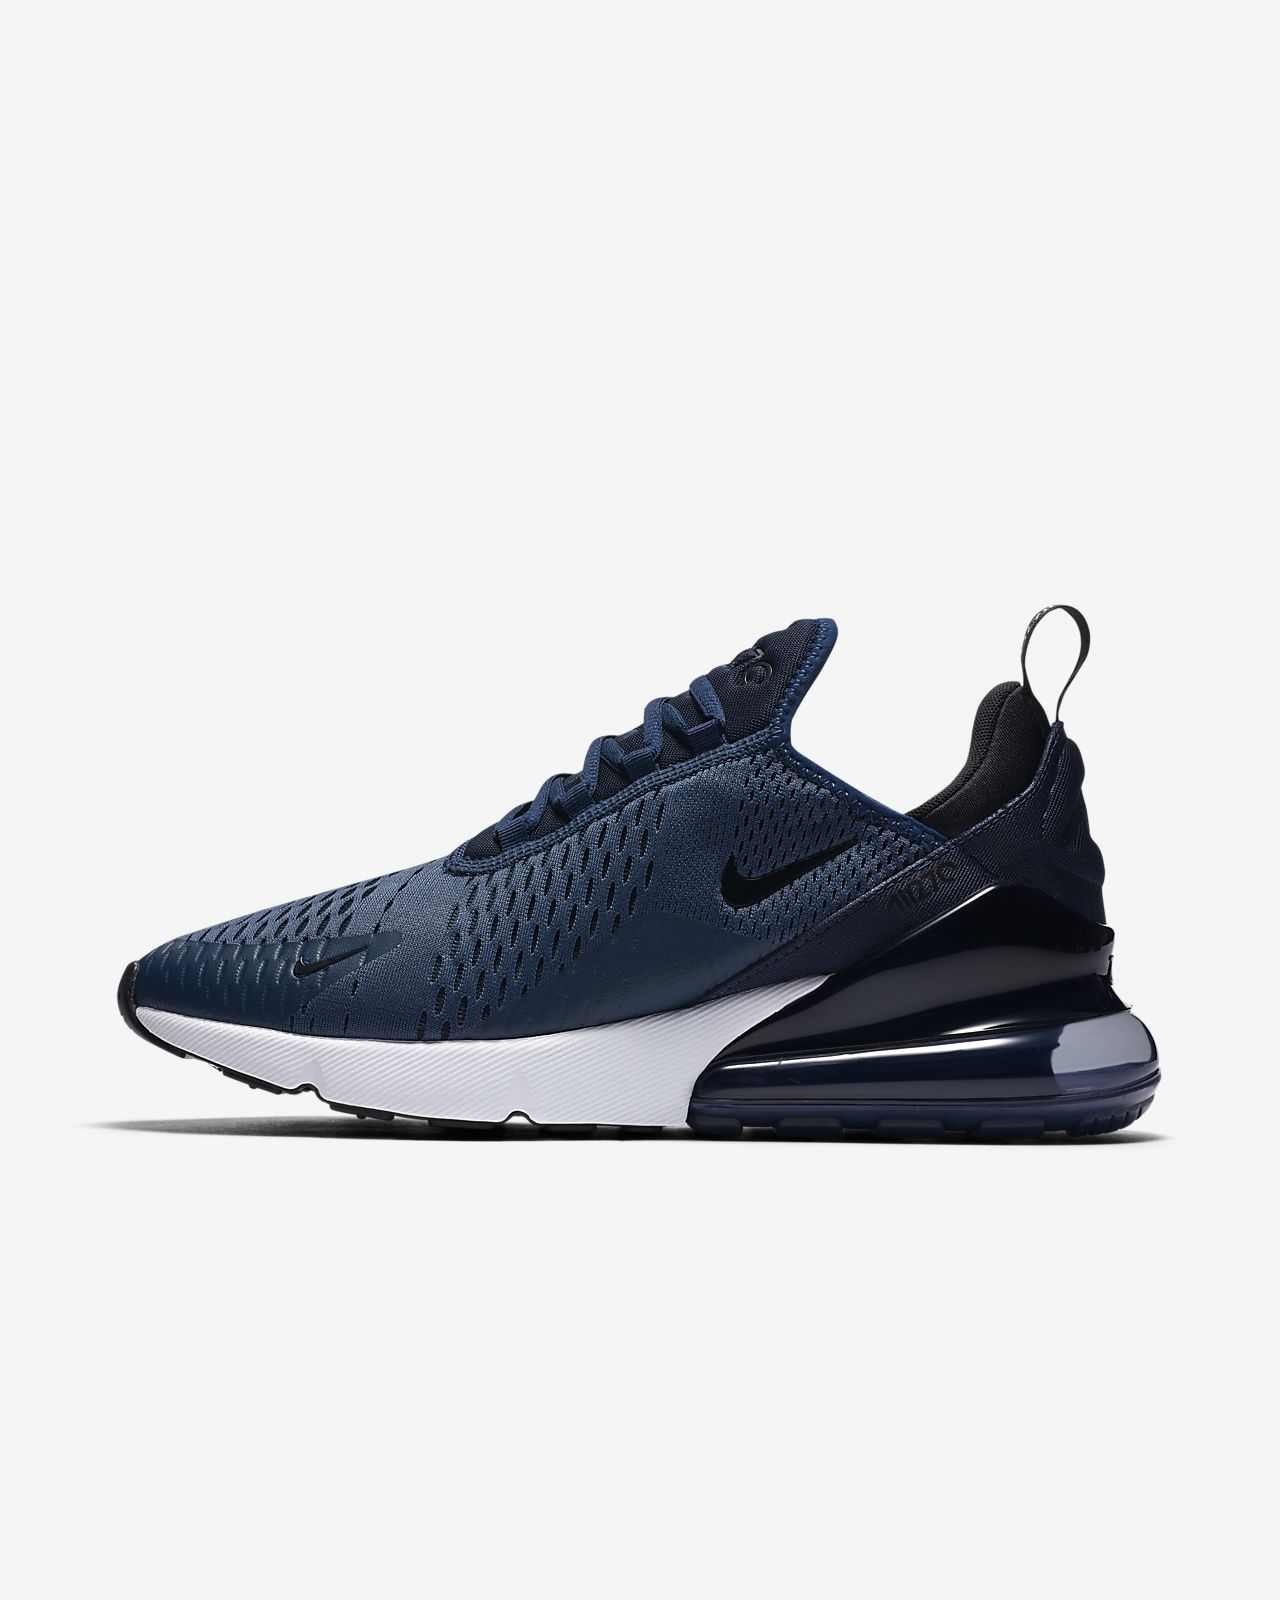 81c1f81667c5 Nike Air Max 270 Men s Shoe. Nike.com LU